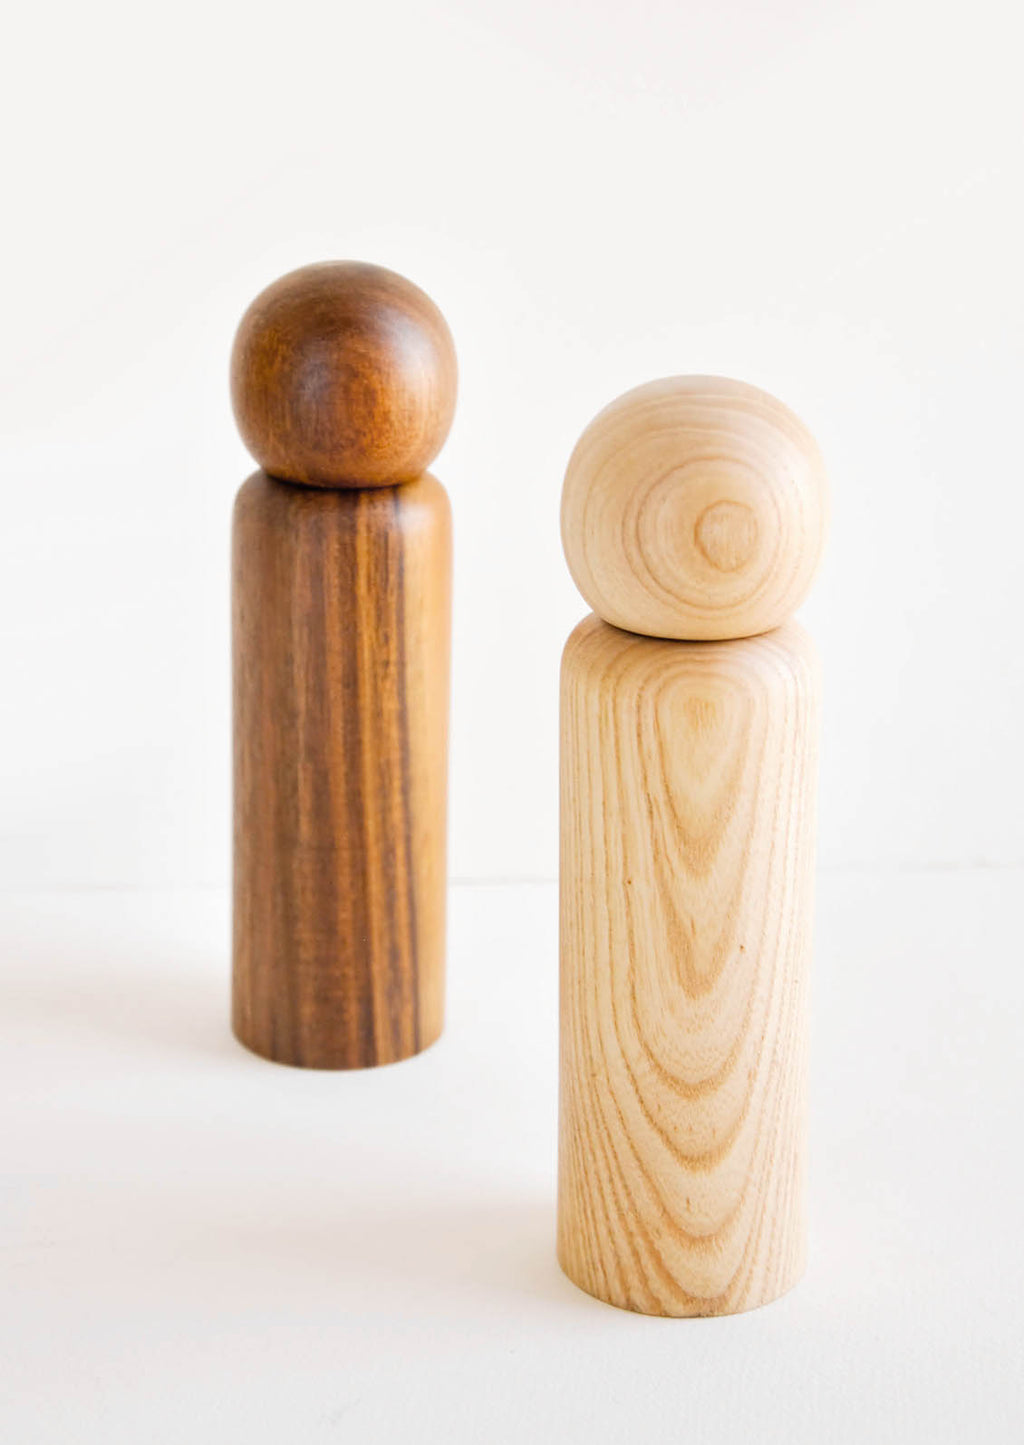 1: Two minimal Wooden Salt & Pepper Grinders with Spherical Tops in dark and light wood.